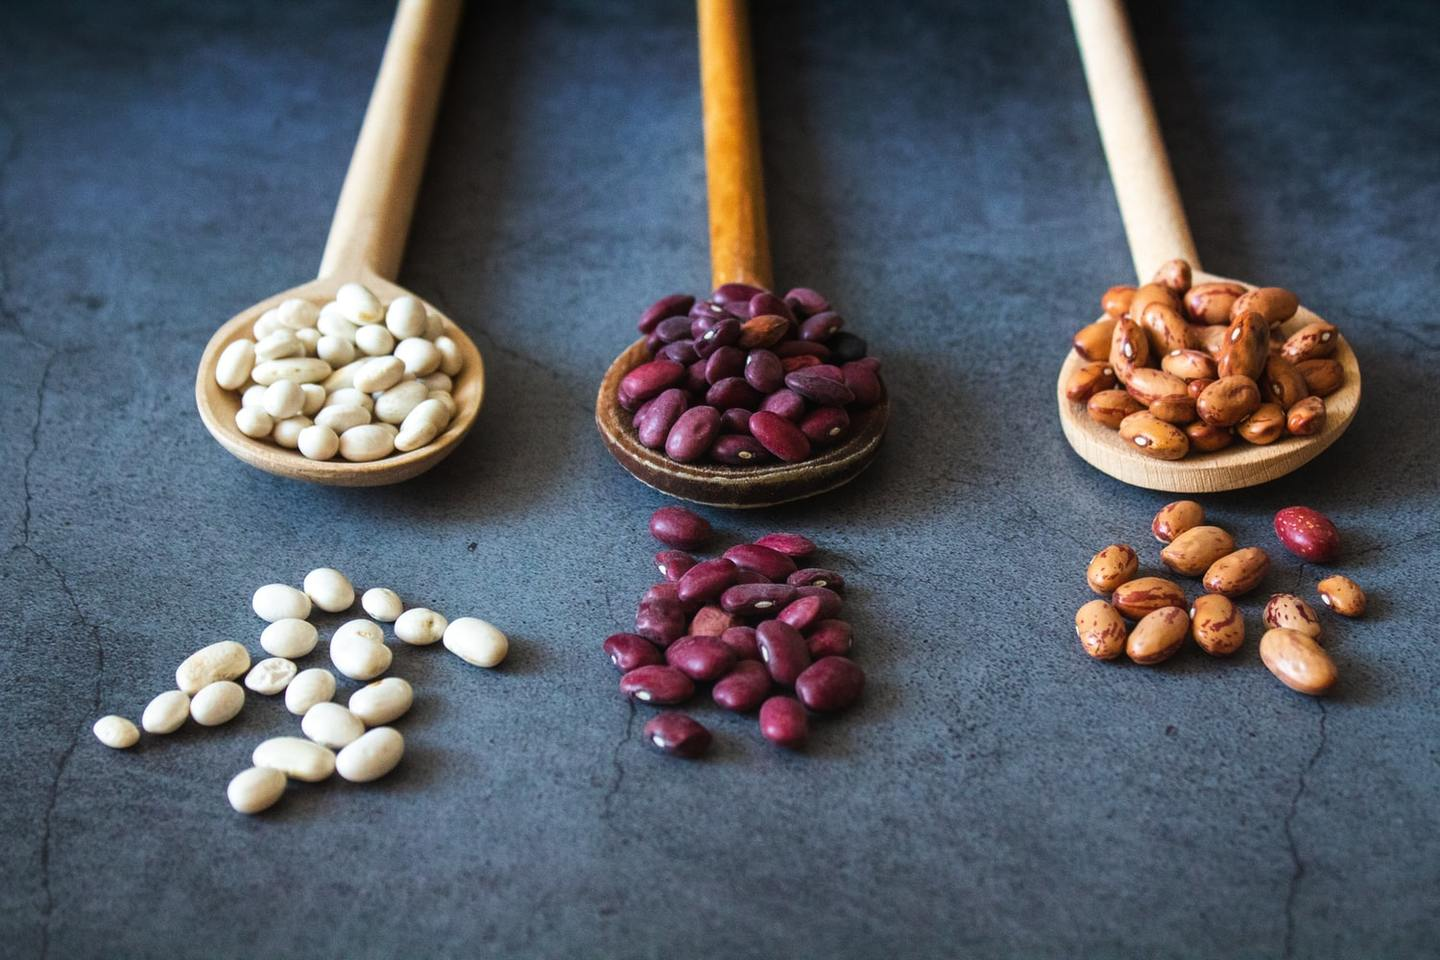 Different kinds of beans on wooden spoons